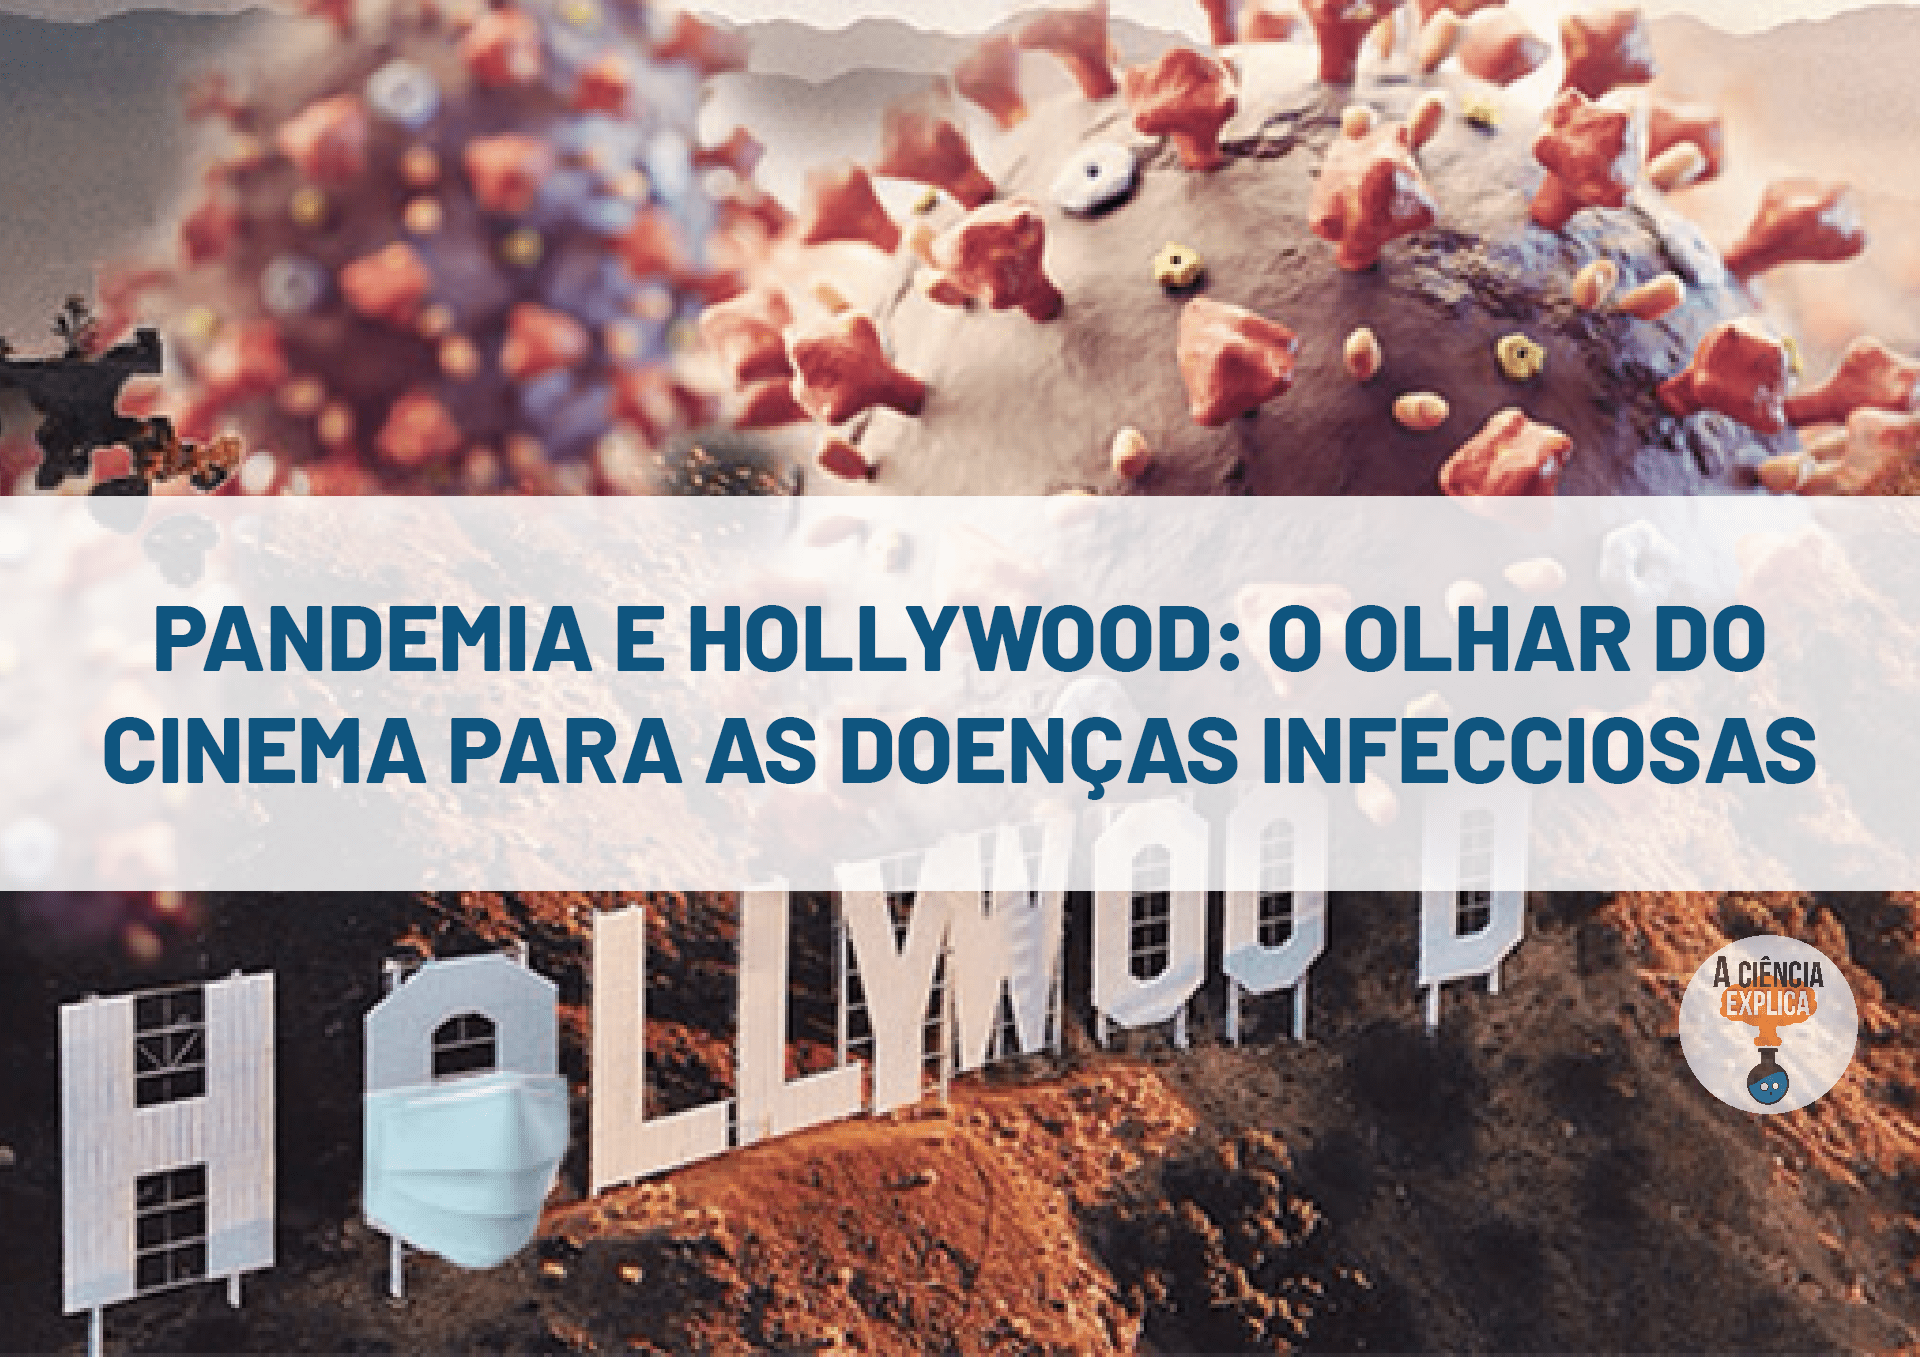 Pandemias e Hollywood: o olhar do cinema para as doenças infecciosas